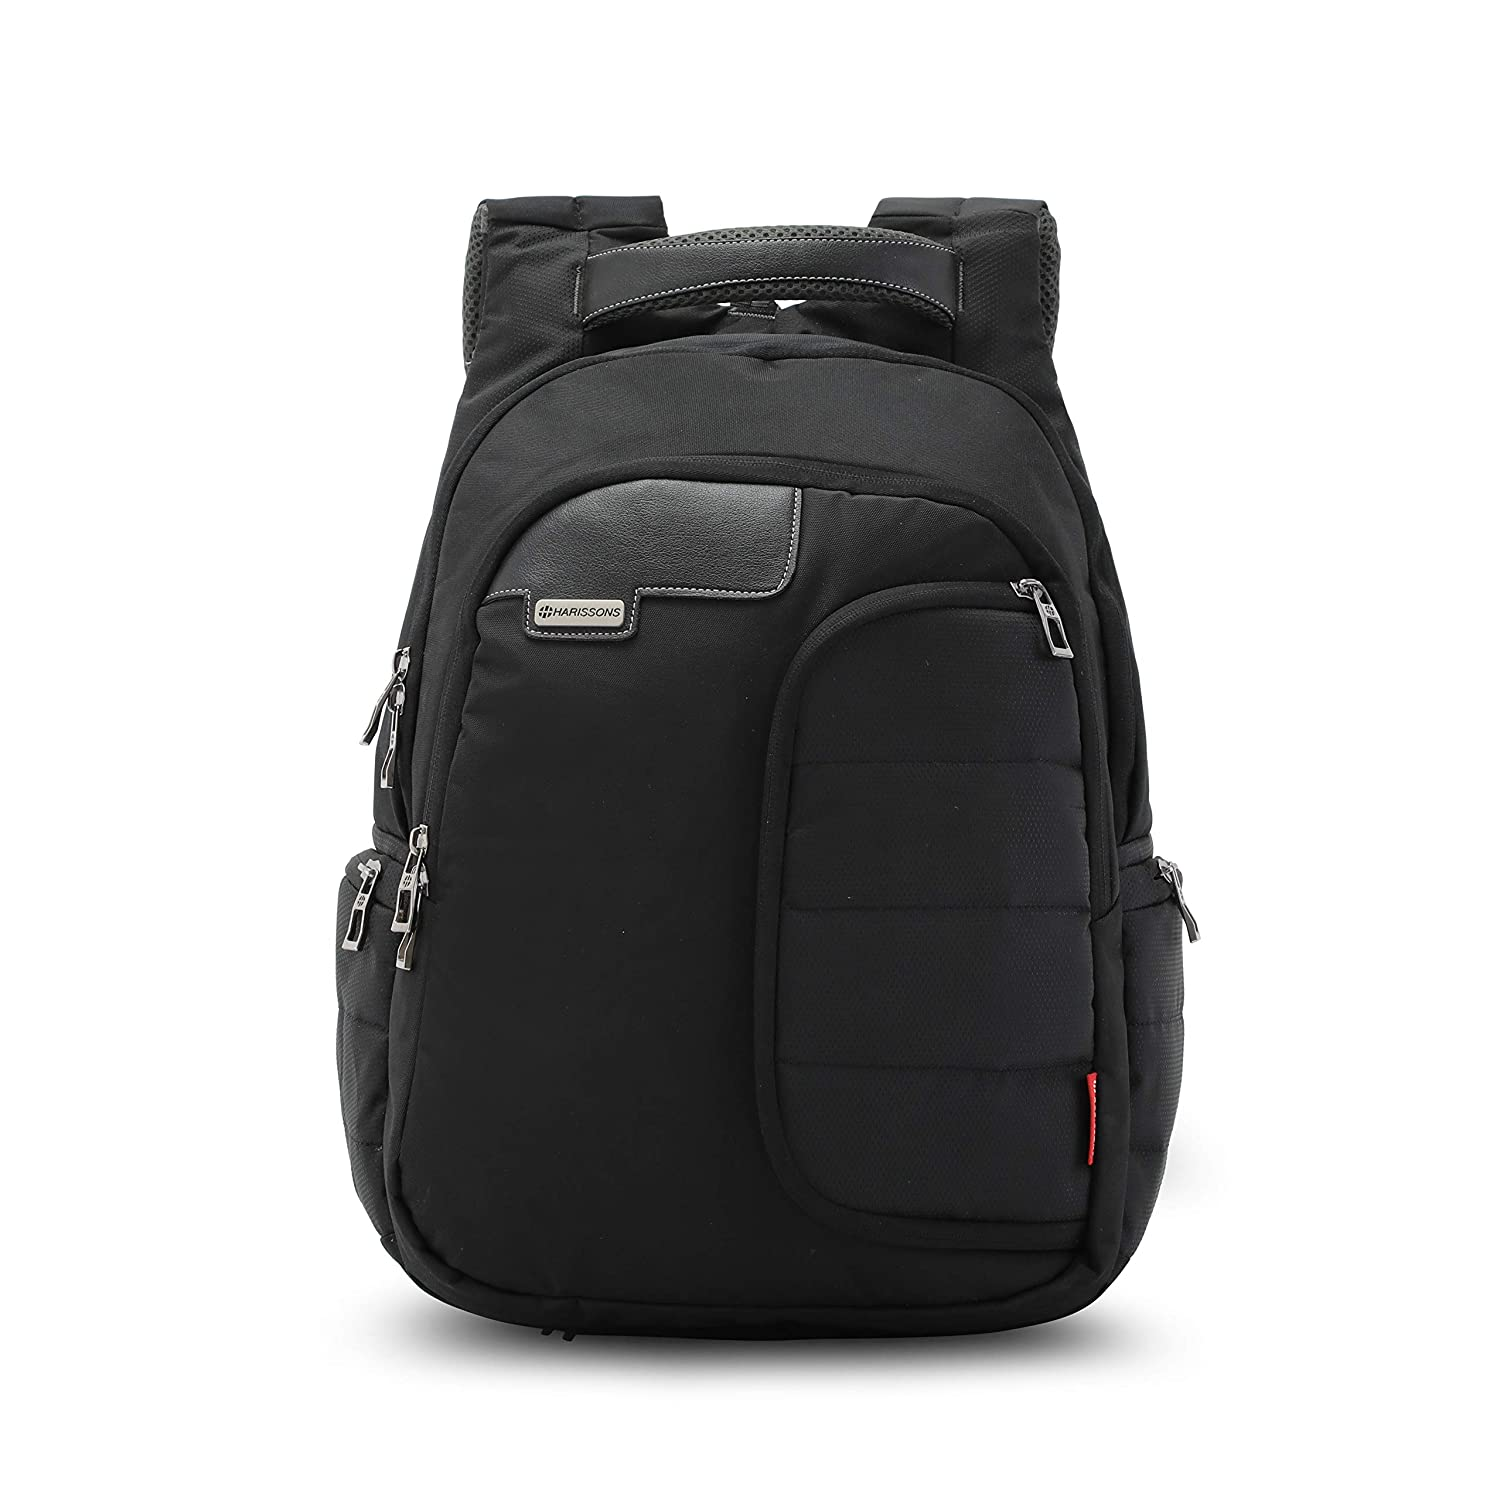 Harissons Vervo Laptop Backpack for Men and Women - Bag with